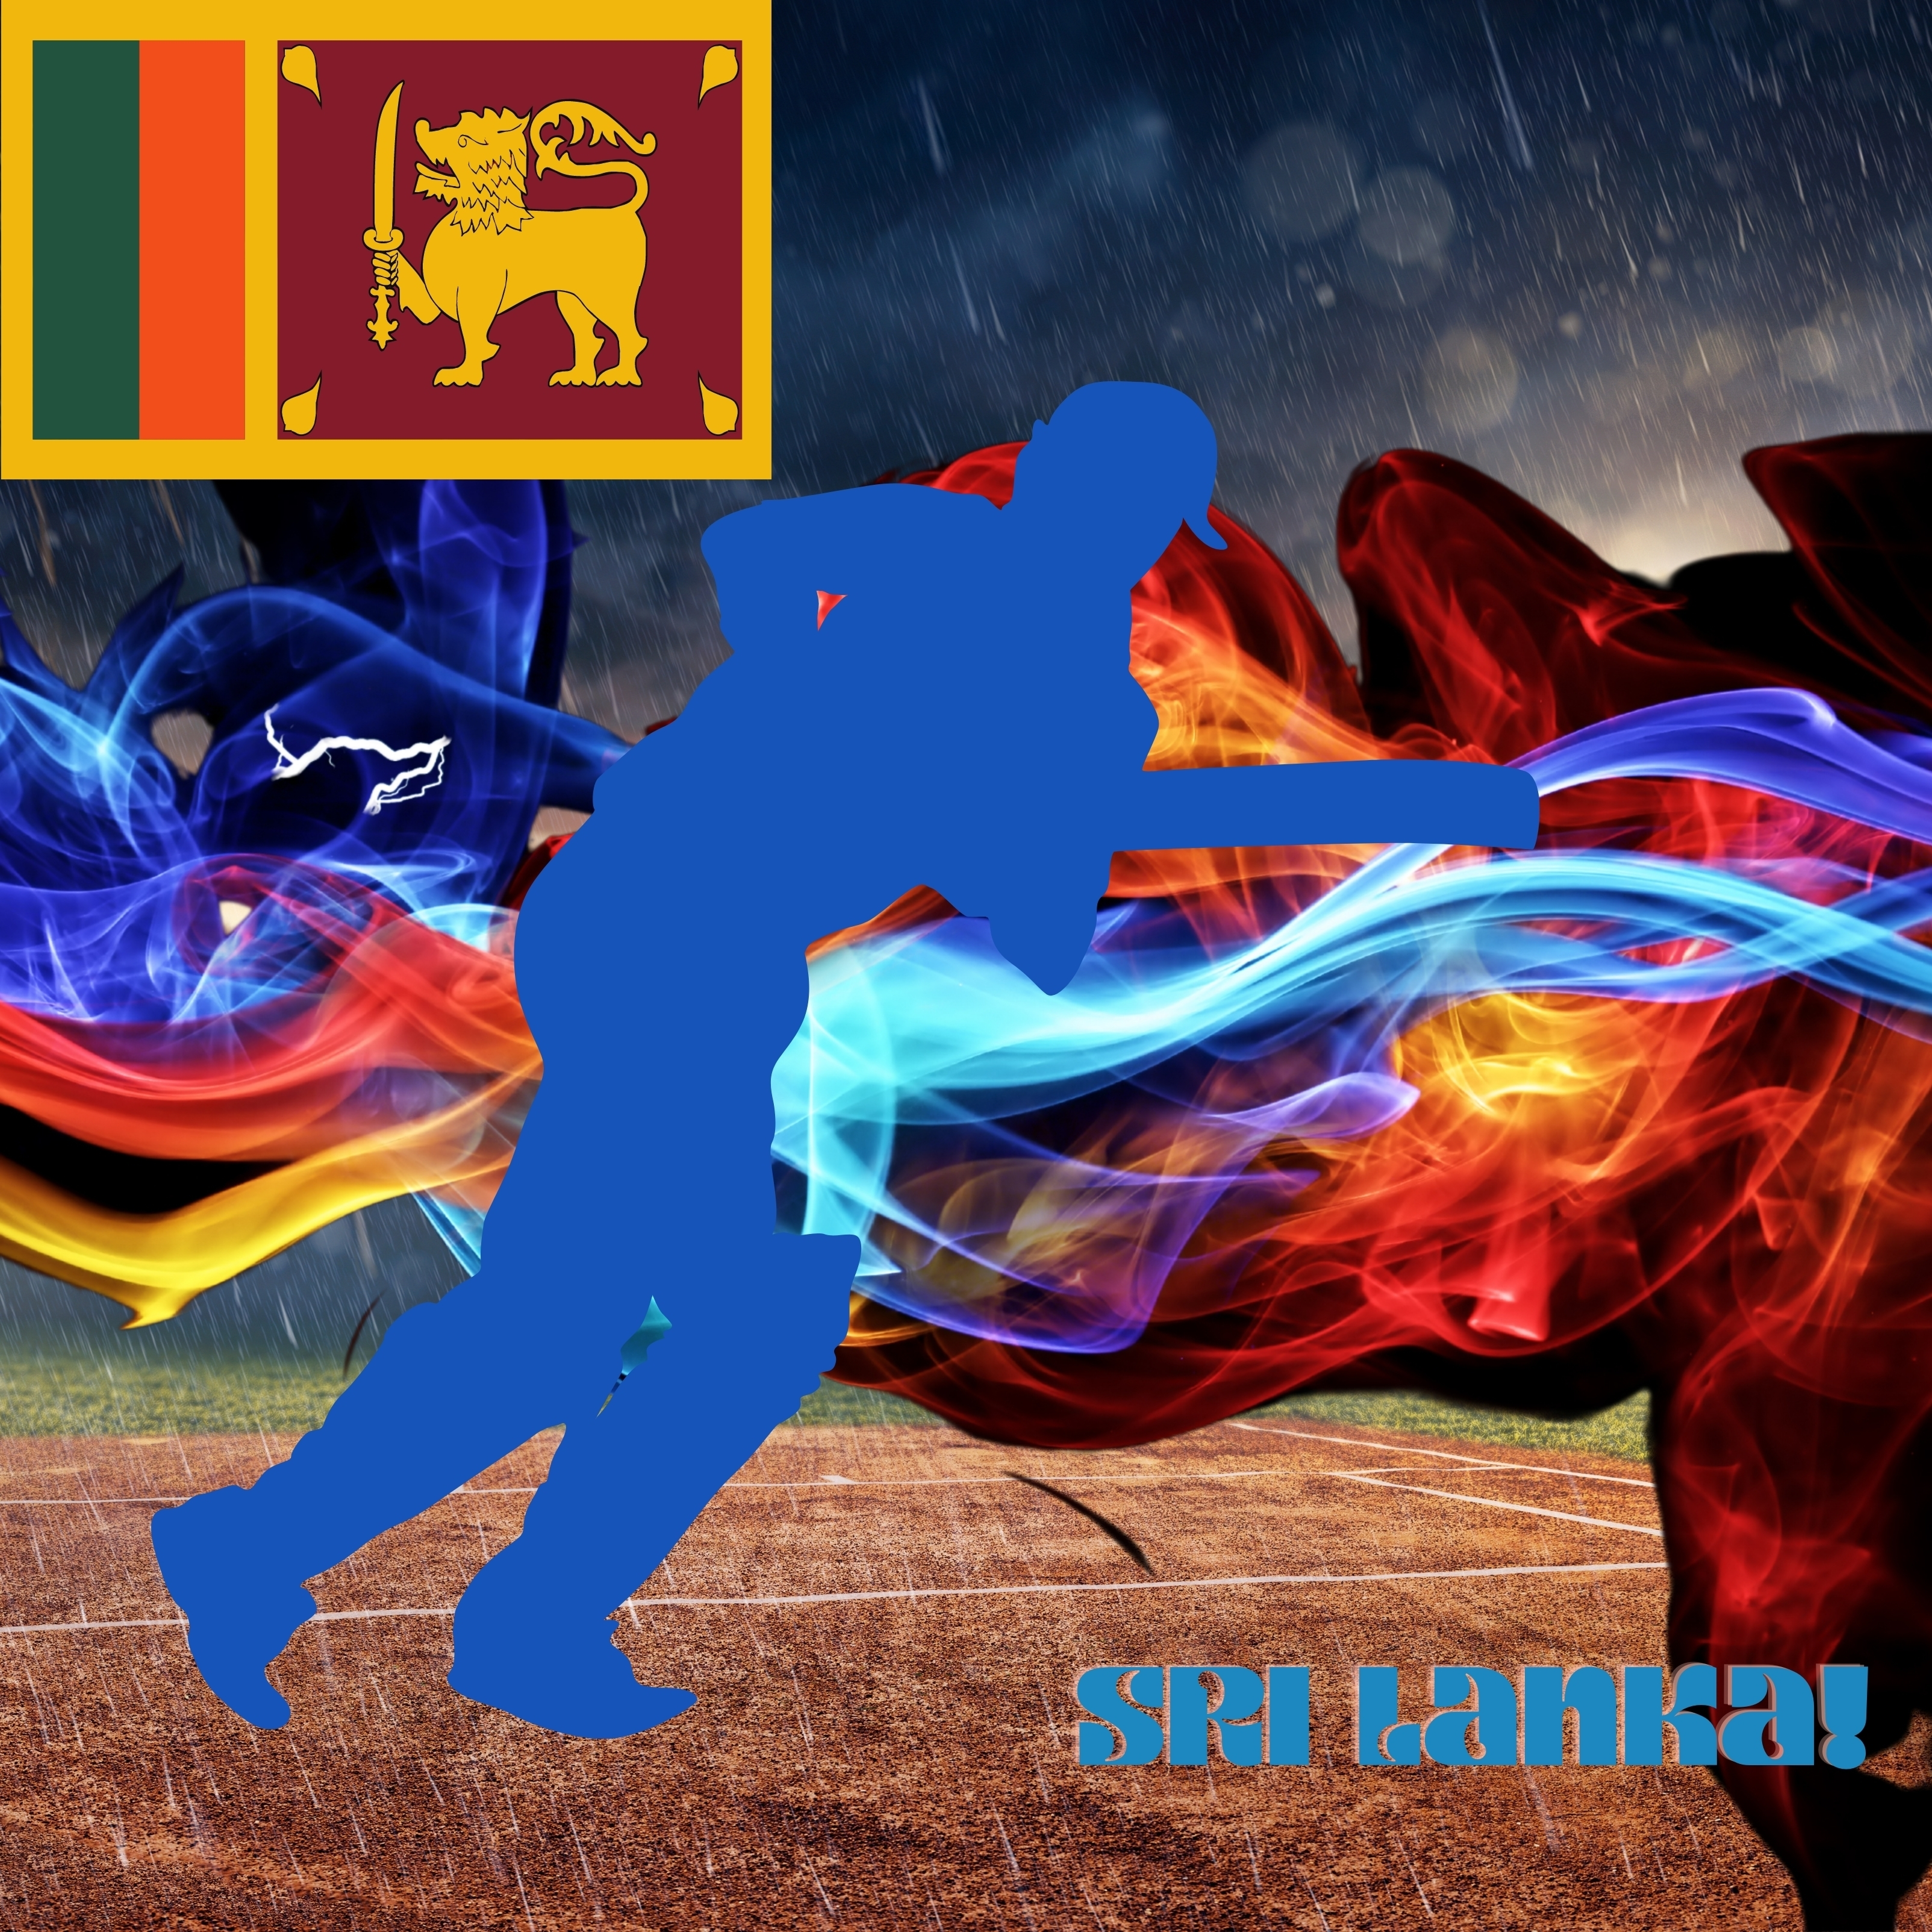 Sri Lanka Cricket Stadium iPad Wallpaper